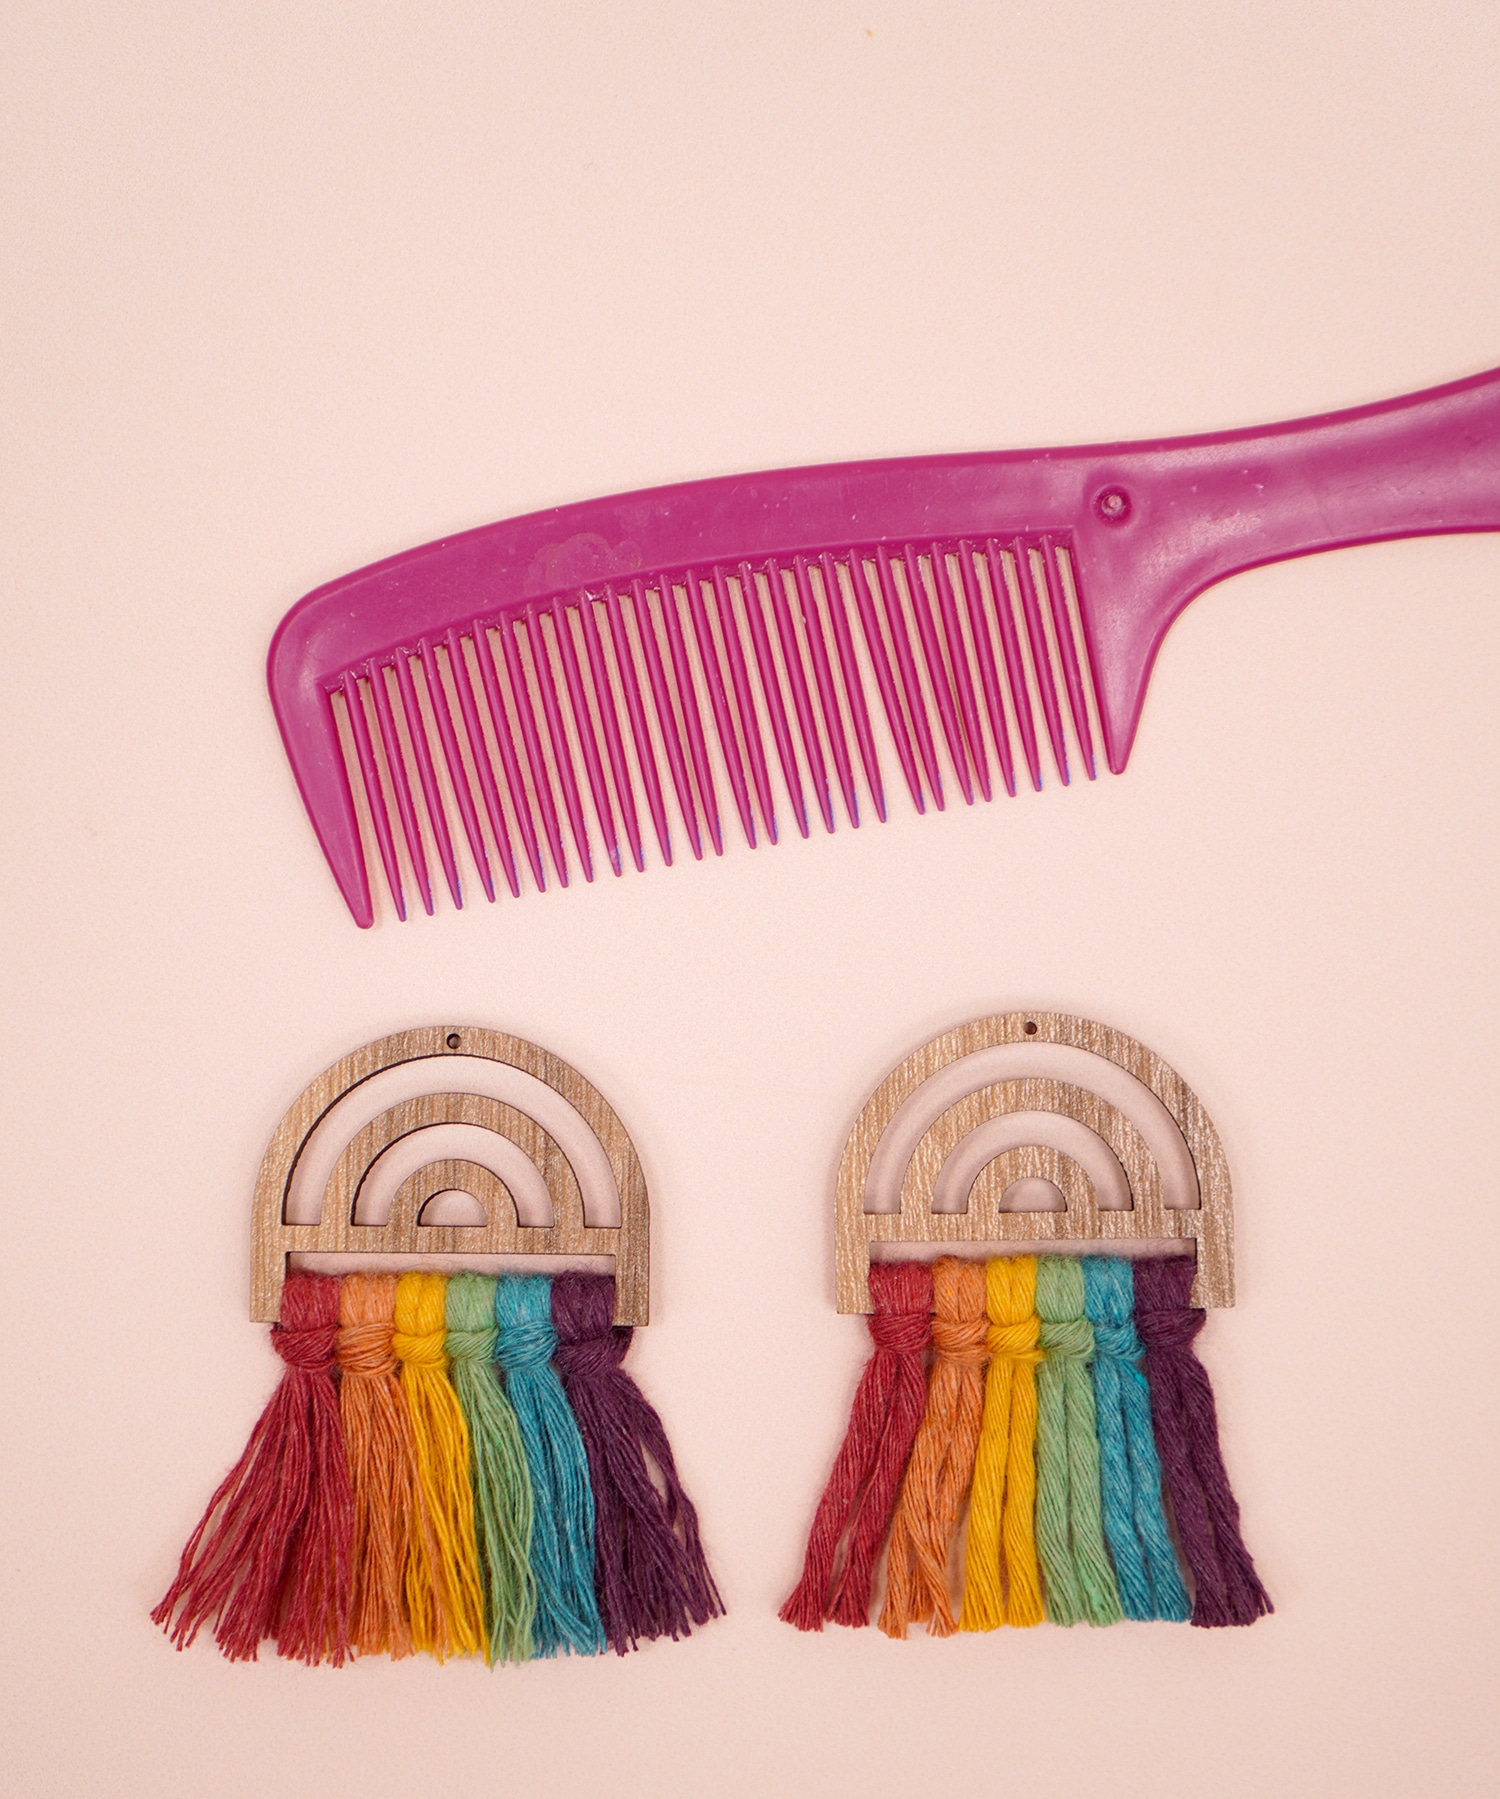 Comparing a brushed vs unbrushed rainbow wooden macrame earring with pink comb in background